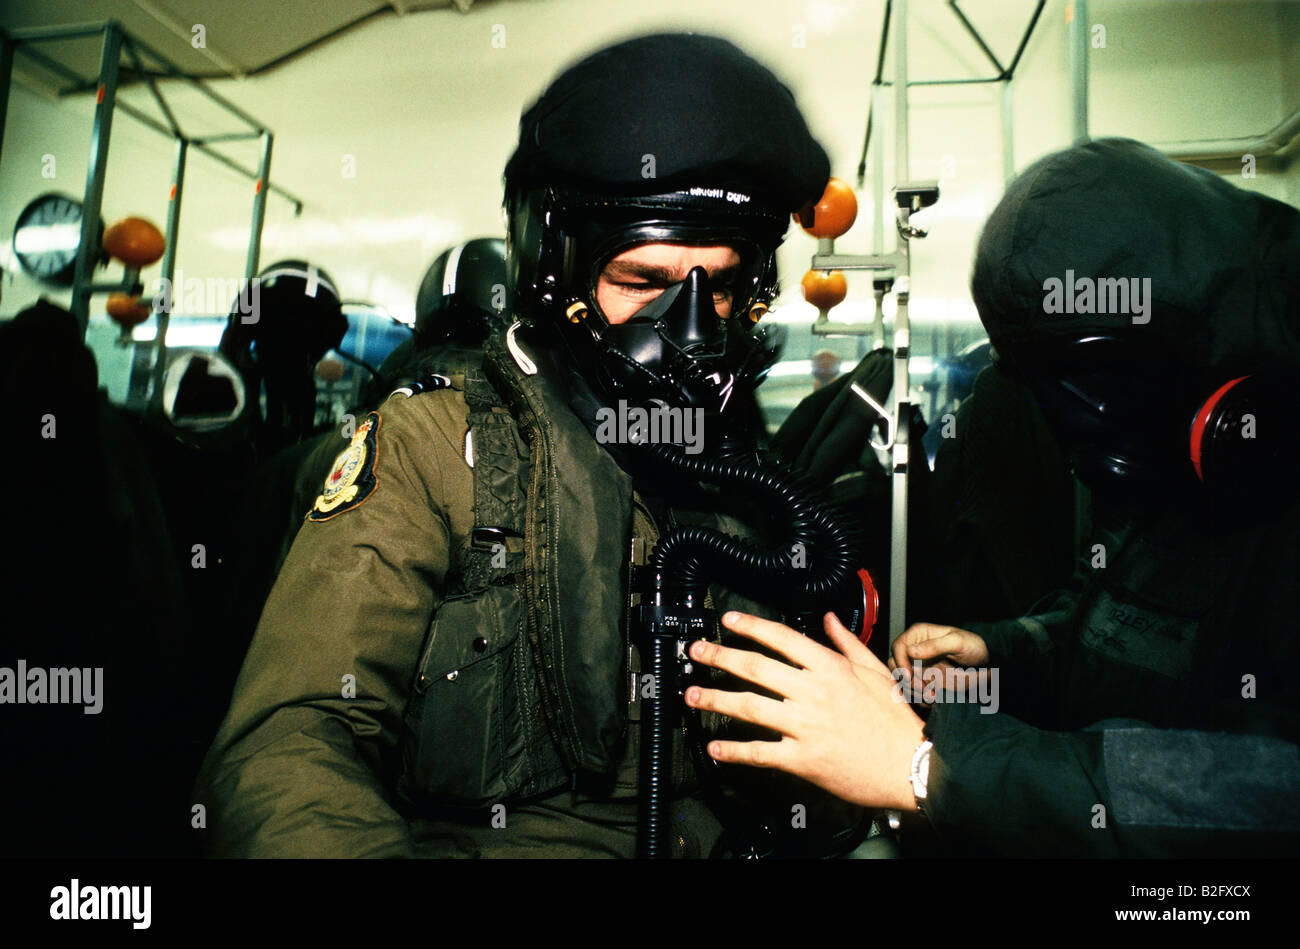 NEXT BATTLE OF BRITAIN FIGHTER PILOT ON SCRAMBLE PUTTING ON CHEMICAL GERM WARFARE SUIT 1988 - Stock Image